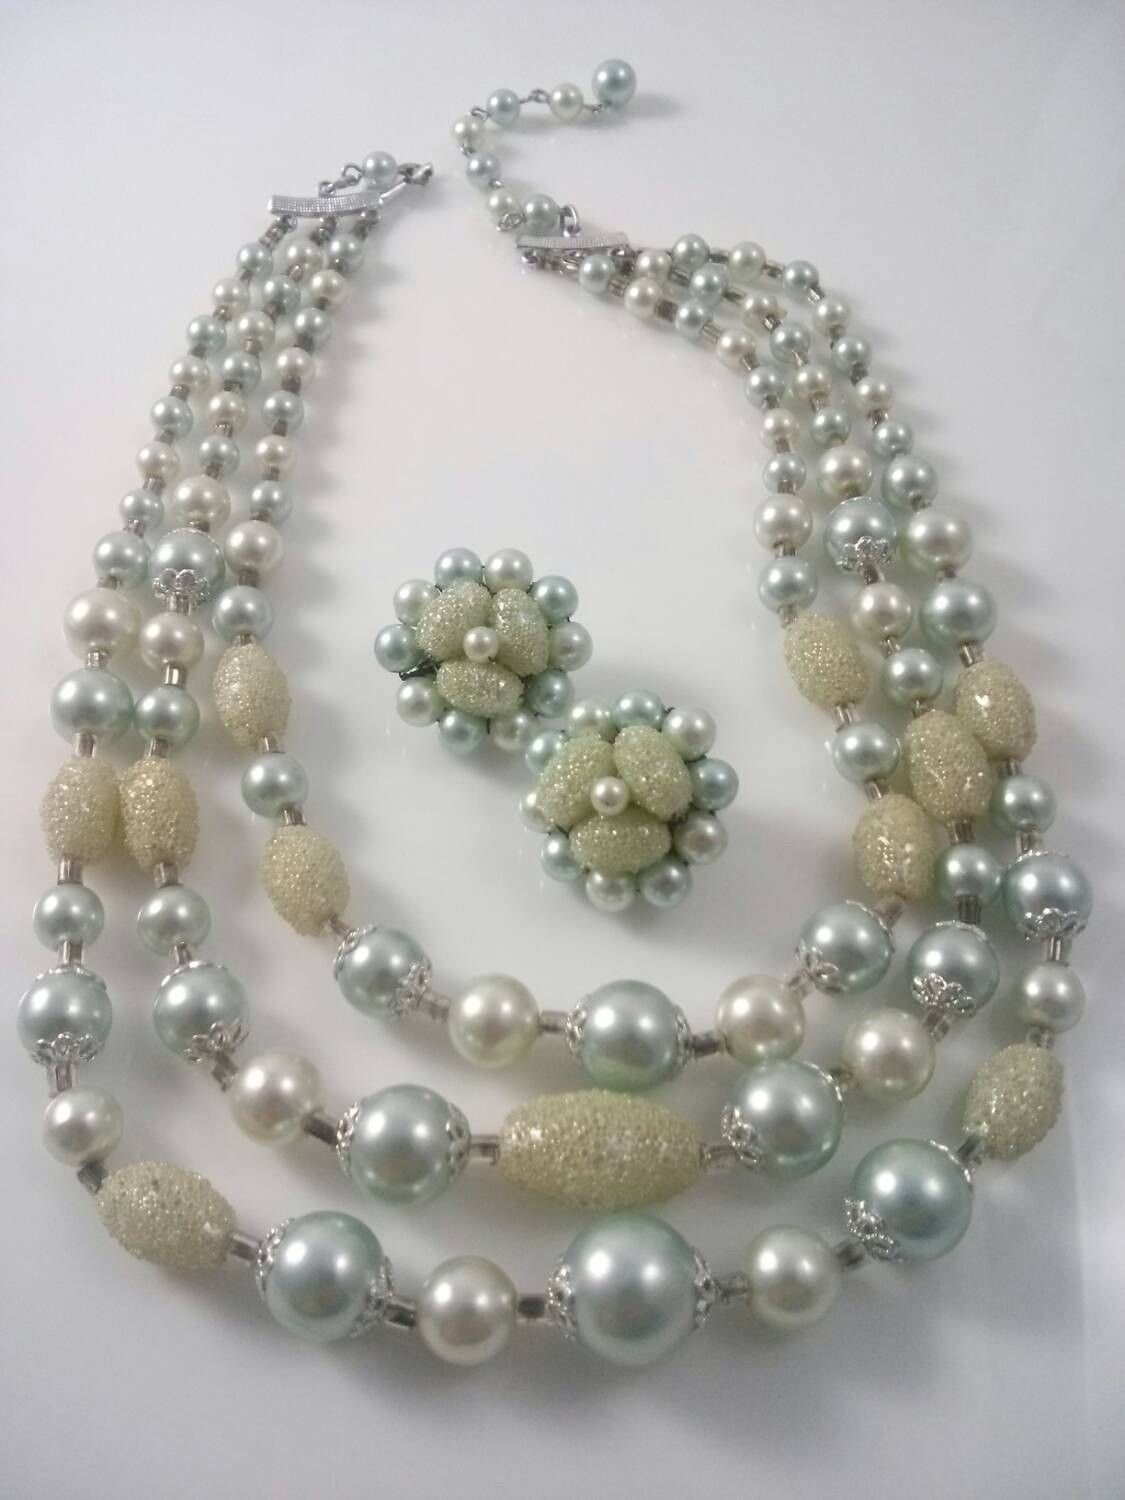 Vintage Demi Parure Necklace and Earring Set Triple Strand Light Blue Grey and Cream Sugar Beads